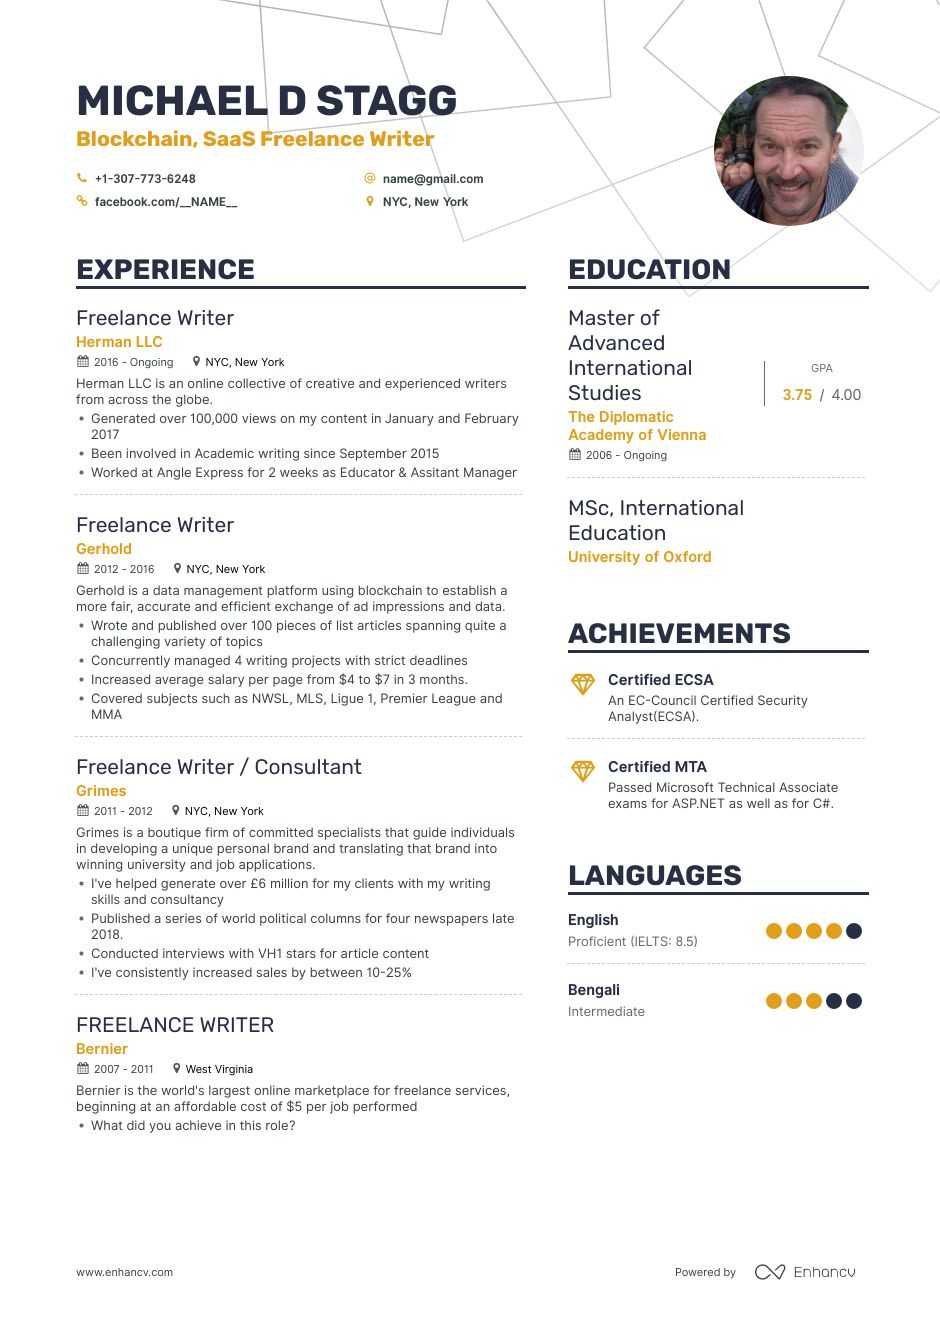 freelance writer resume examples and skills you need to get hired template inventory Resume Freelance Writer Resume Template